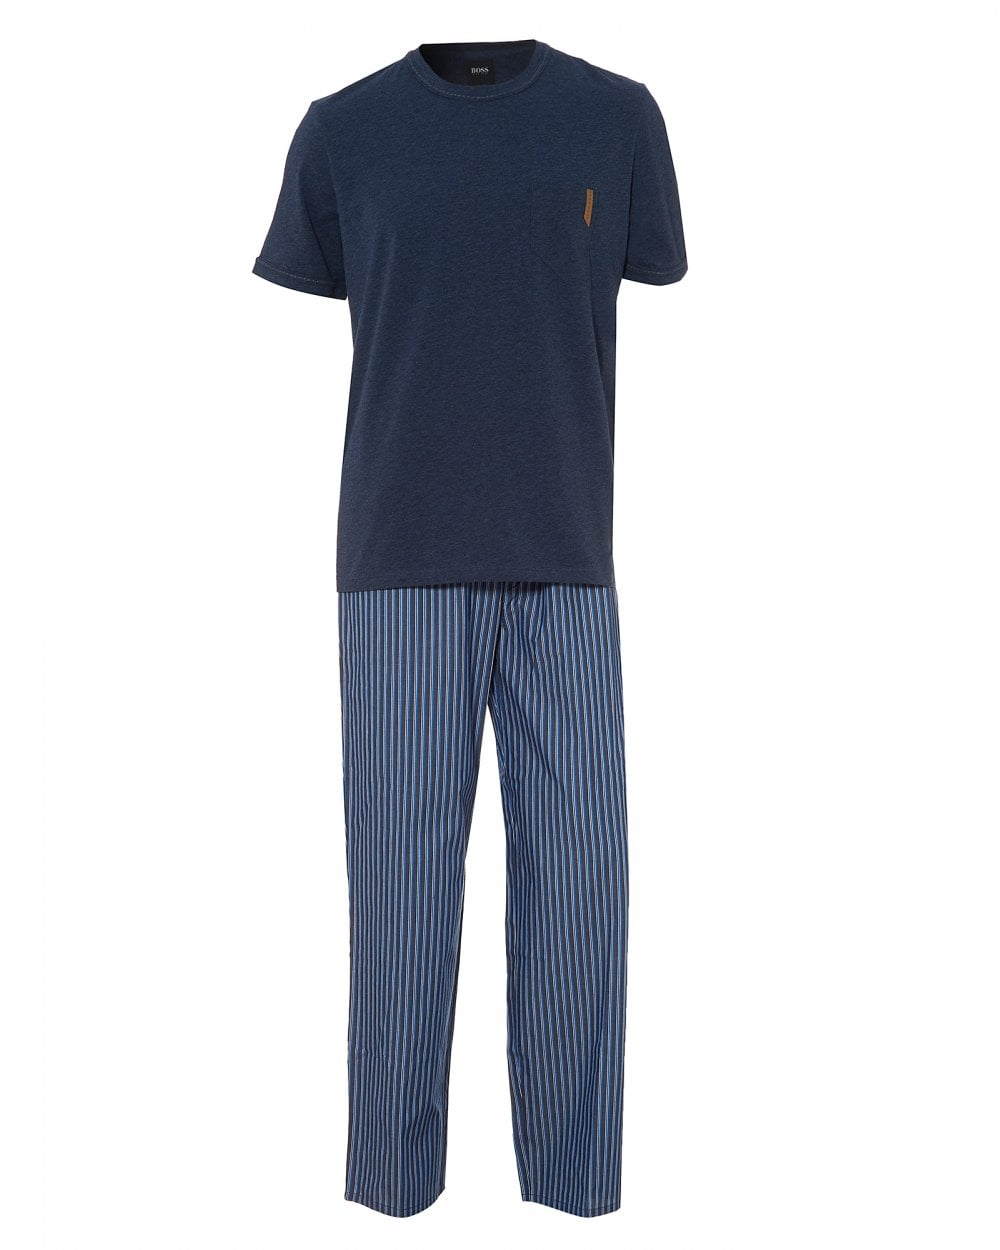 68350627d Mens Trend Long Set Lounge Set, Dark Blue Pyjamas